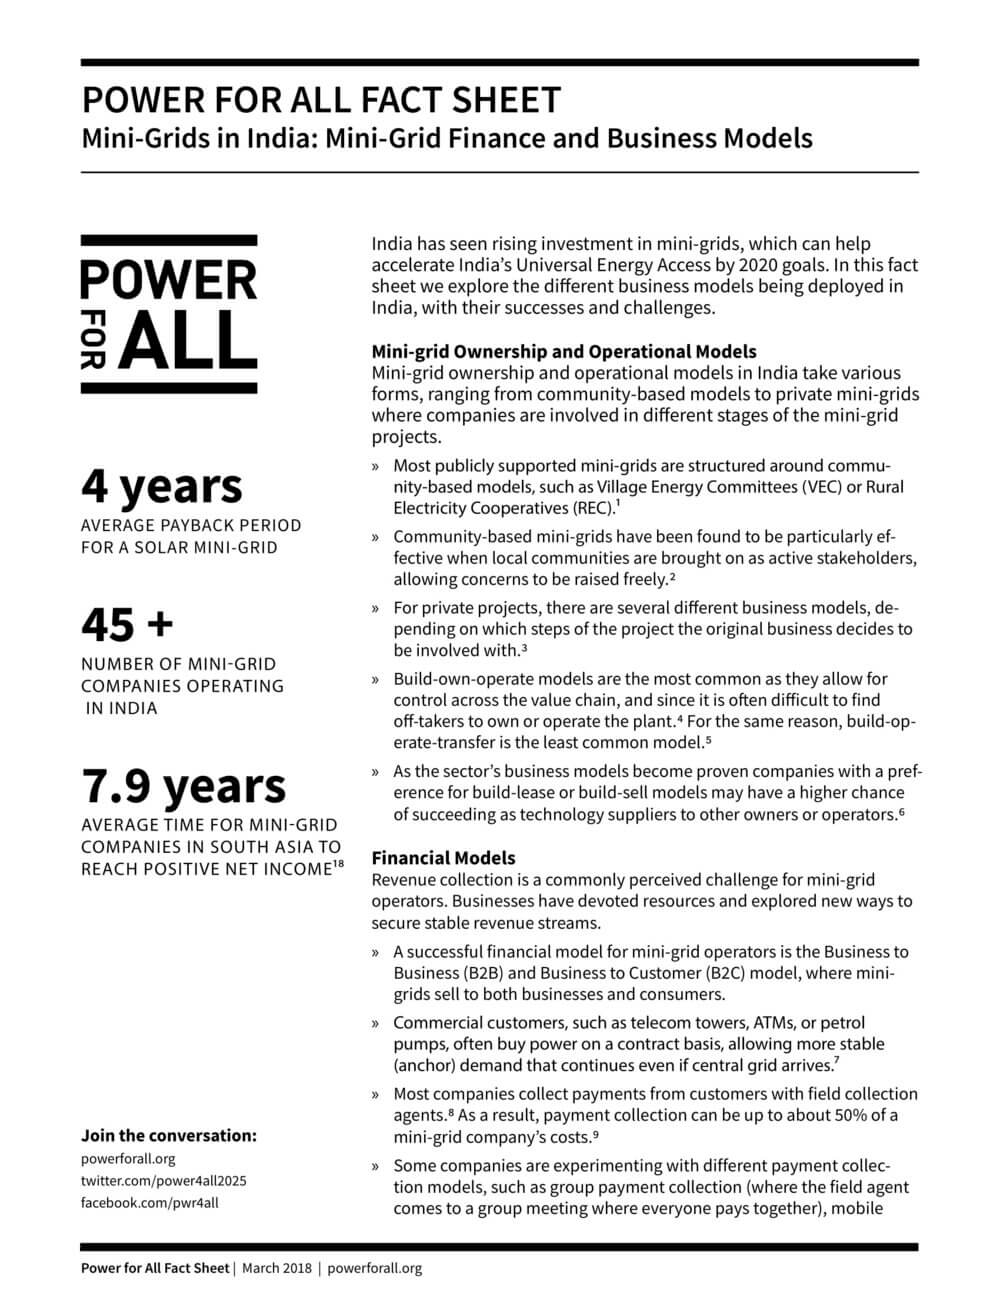 Fact Sheet: Mini-Grids in India: Mini-Grid Finance and Business Models ::  Power For All